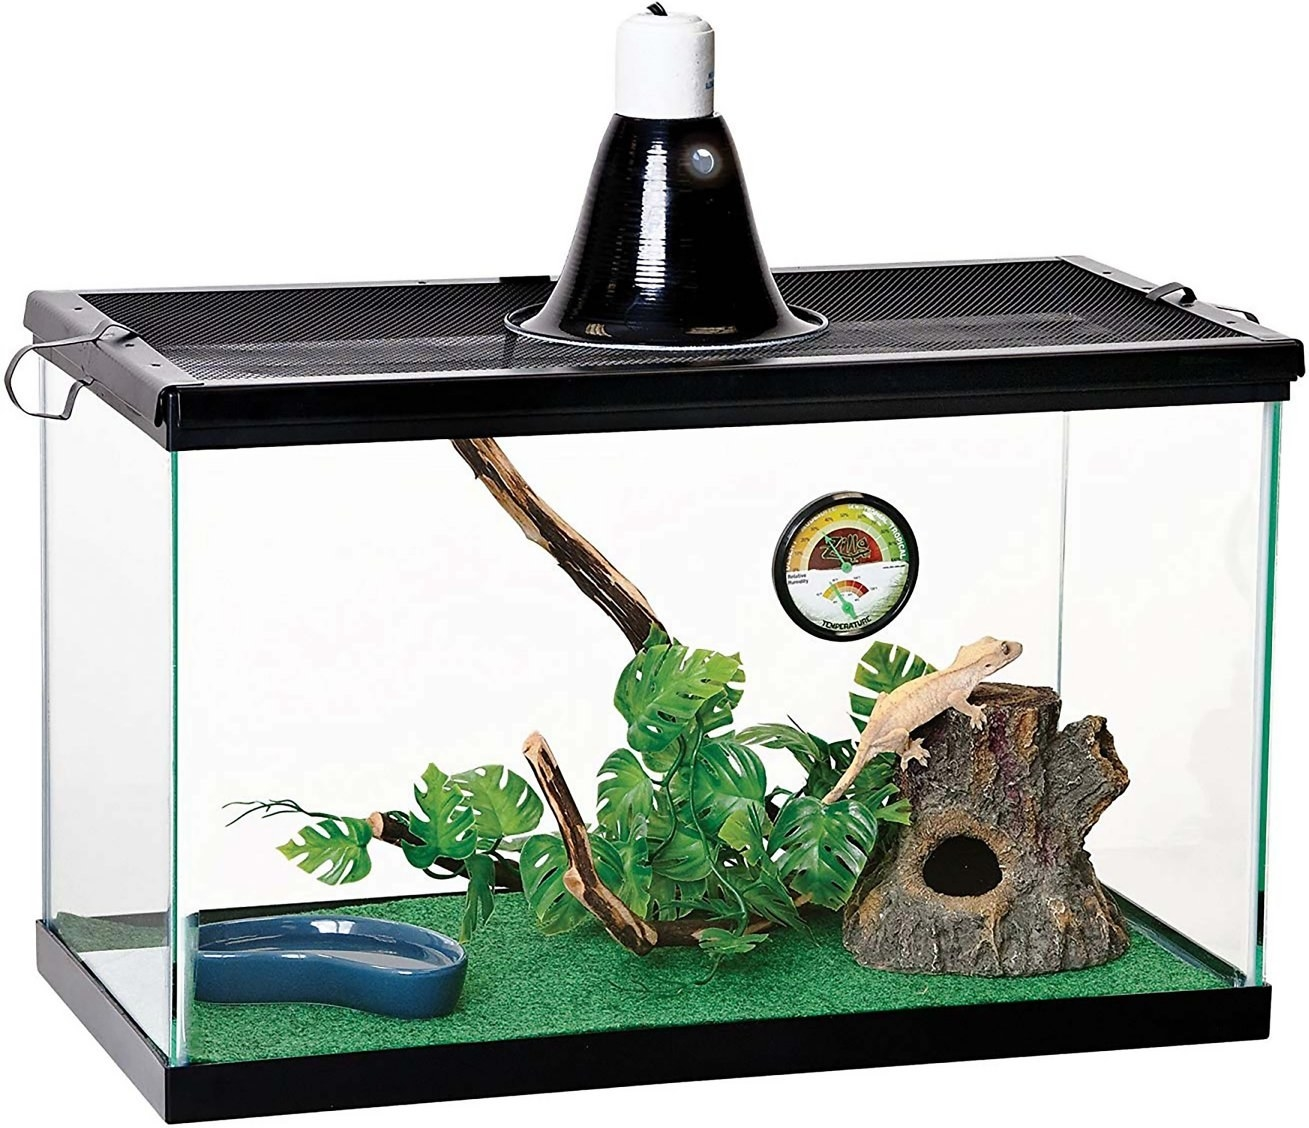 A iguana living inside the terrarium with a reflective dome, temperature gauge, and a liner